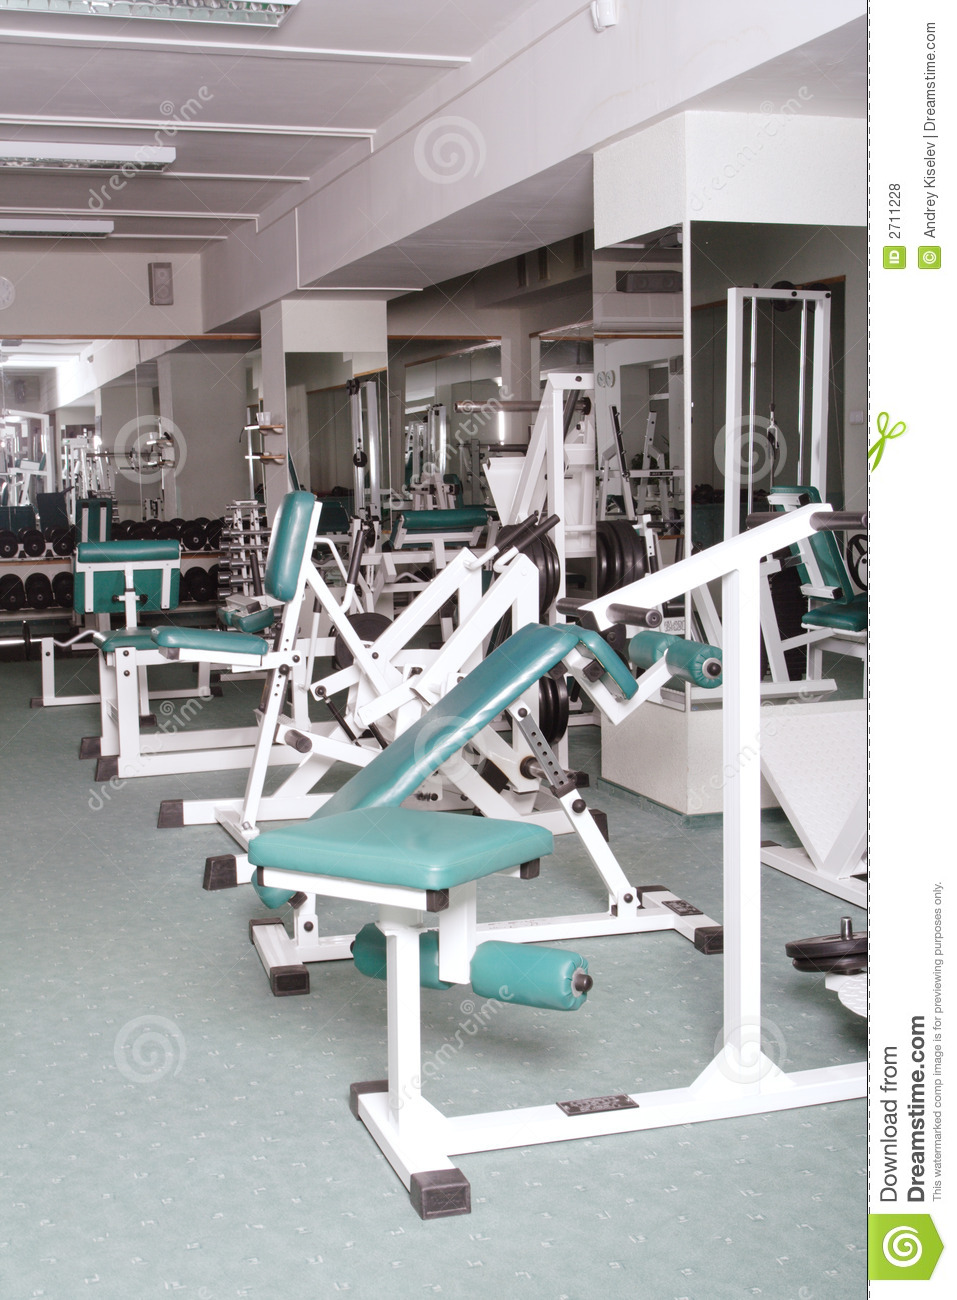 Exercise room and equipment royalty free stock photos